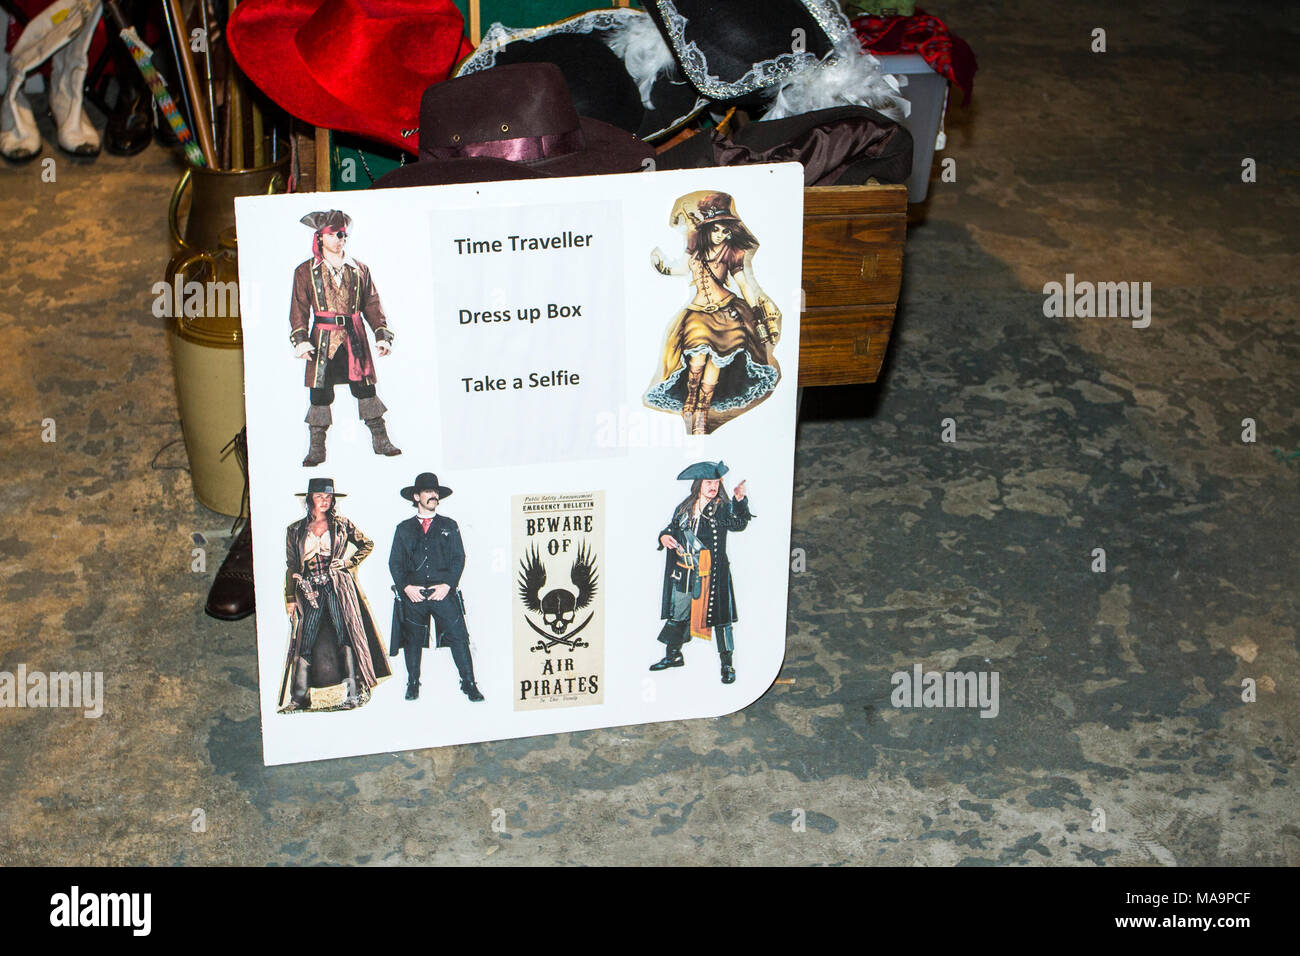 Manchester, UK, 31st March 2018.  Post apocalyptic time travellers meet up for a weekend at the asylum as the four day steampunk convention gets under way at the Bowlers Exhibition Centre in Greater Manchester.  Credit: Cernan Elias/Alamy Live News - Stock Image